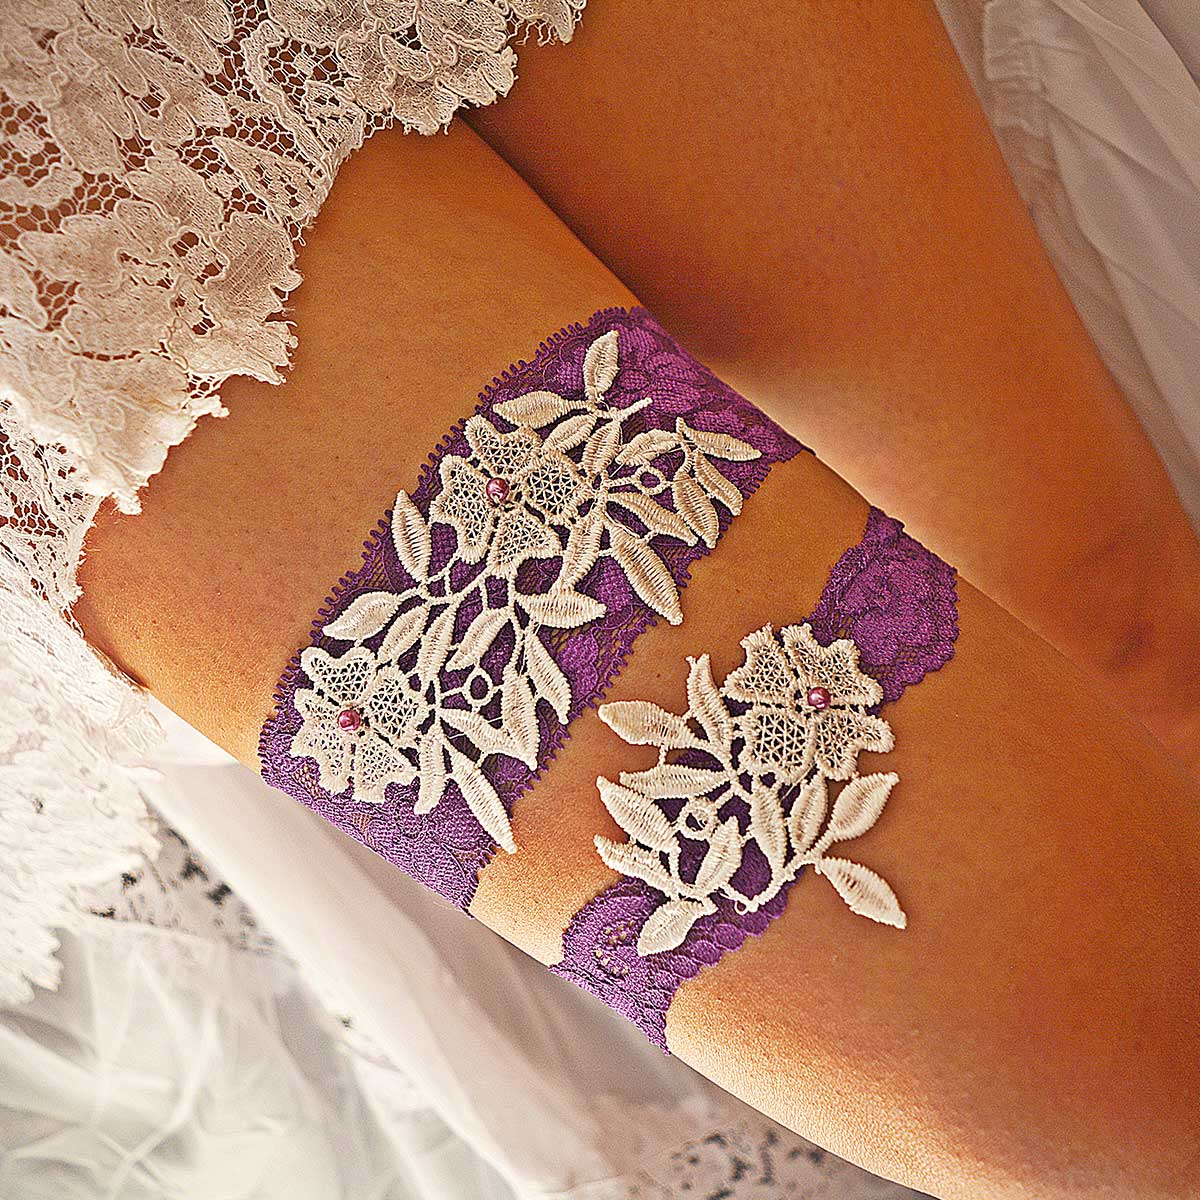 Purple Bridal Garter With Pearls & White Flower Applique Lace - Wedding Garter - SuzannaM Designs